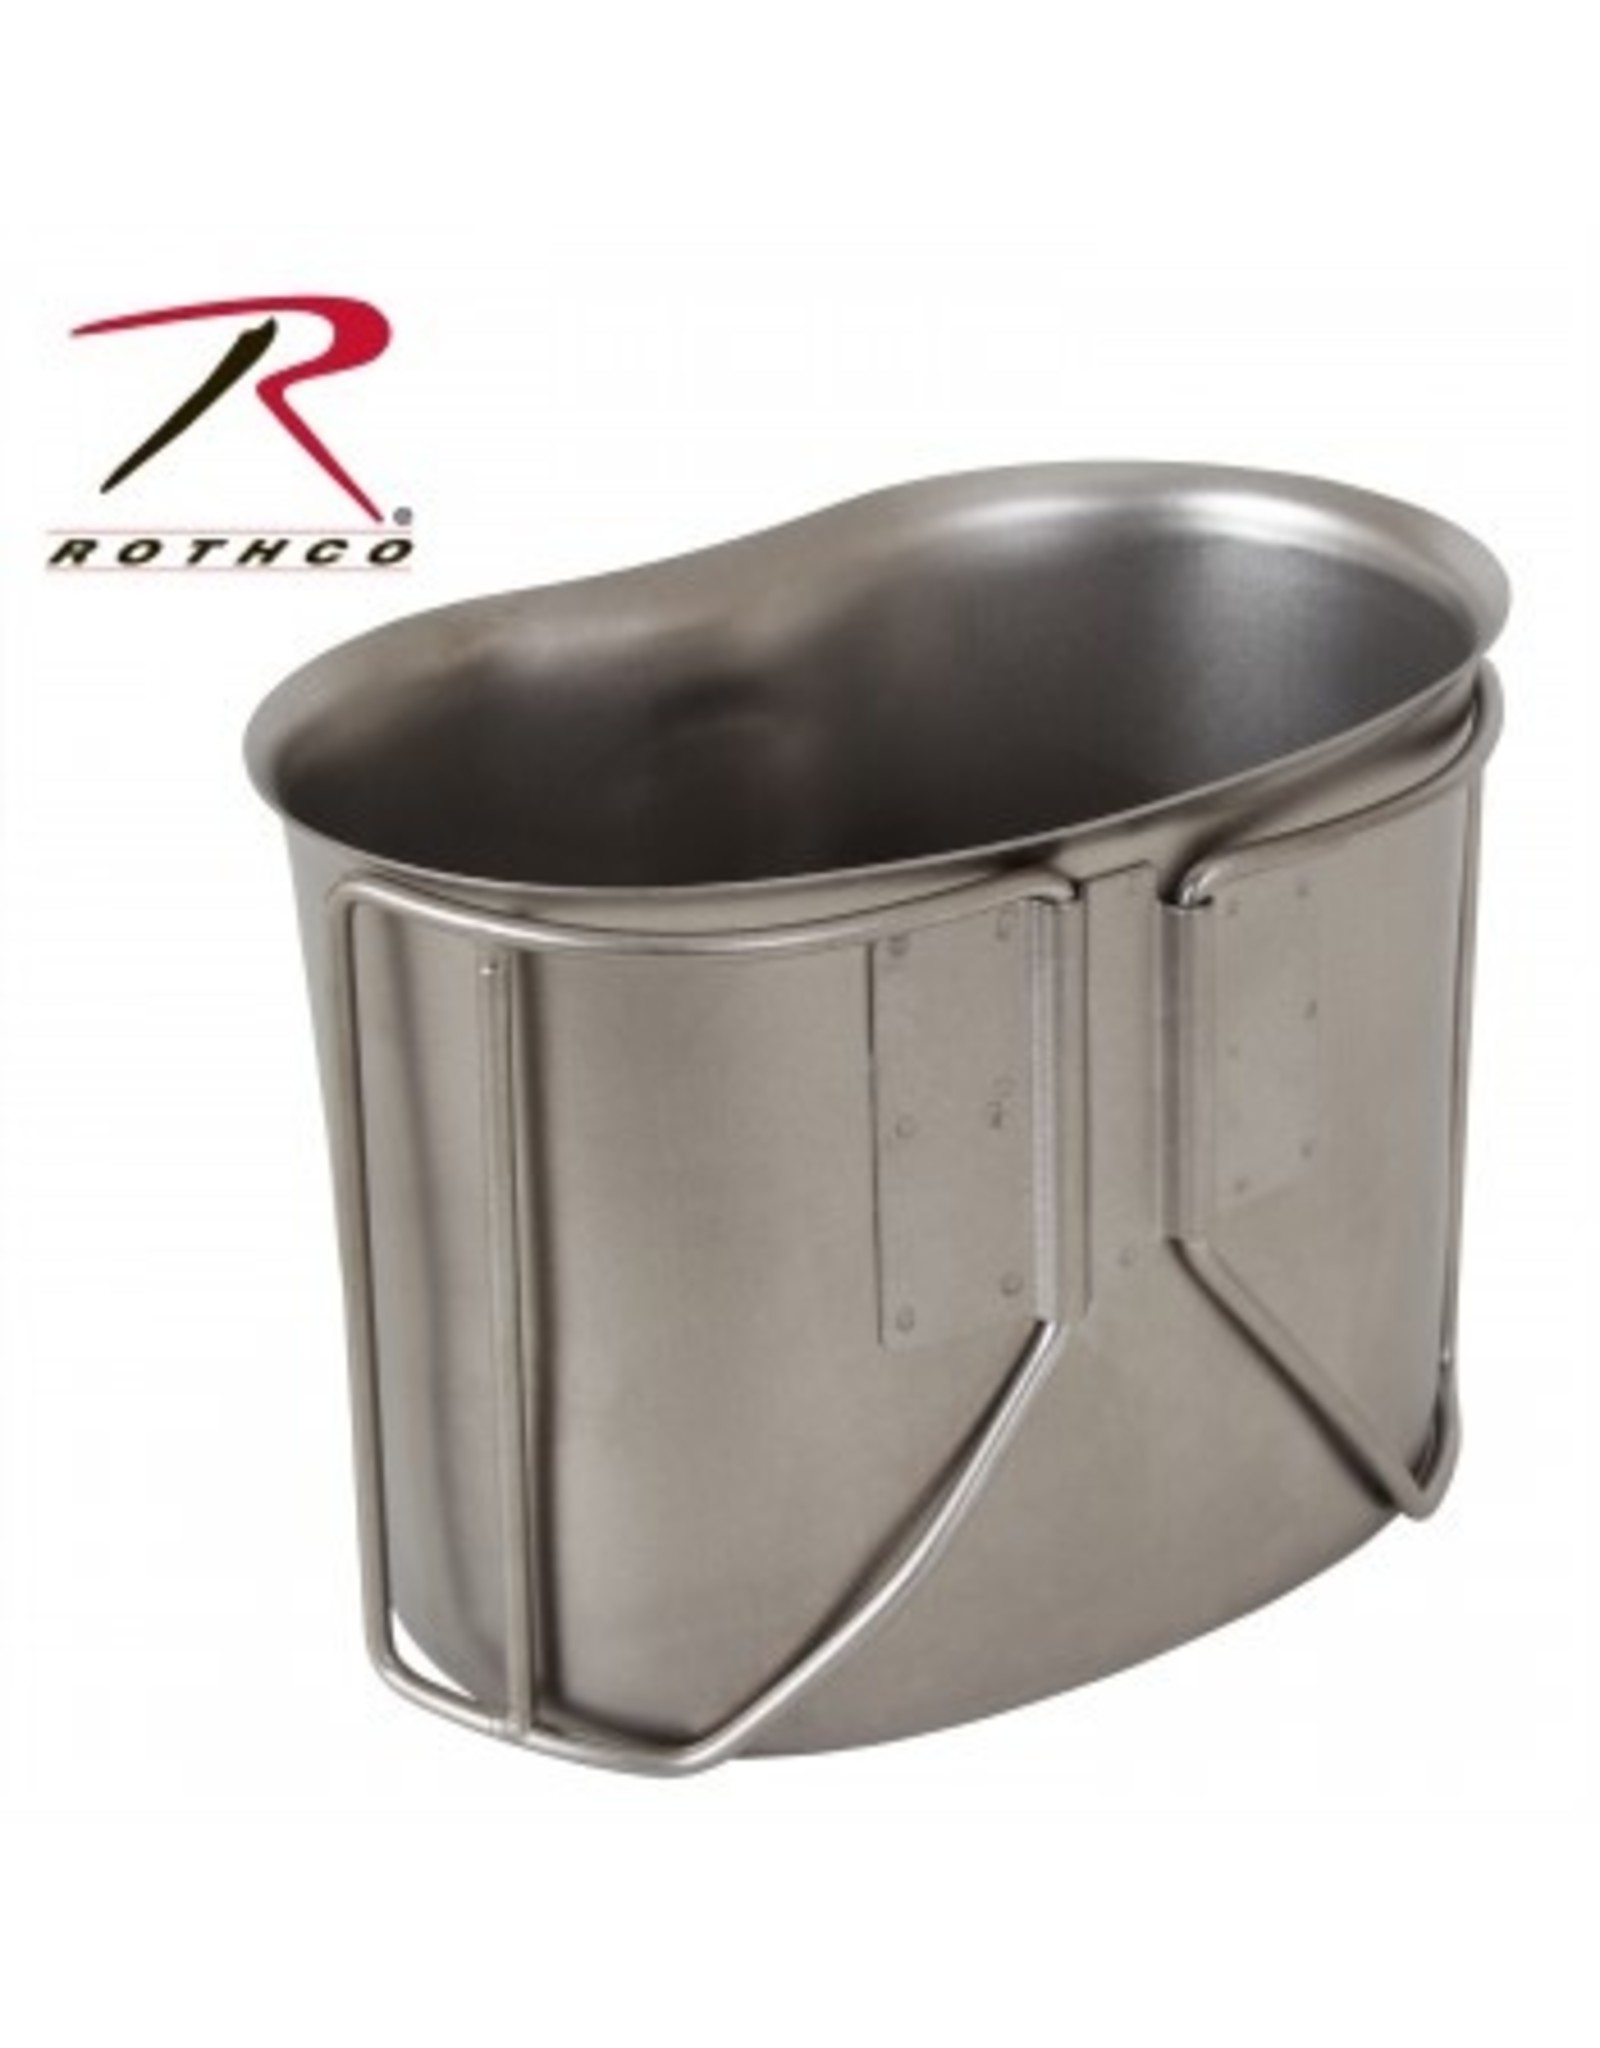 ROTHCO G.I. STYLE STAINLESS STEEL CANTEEN CUP